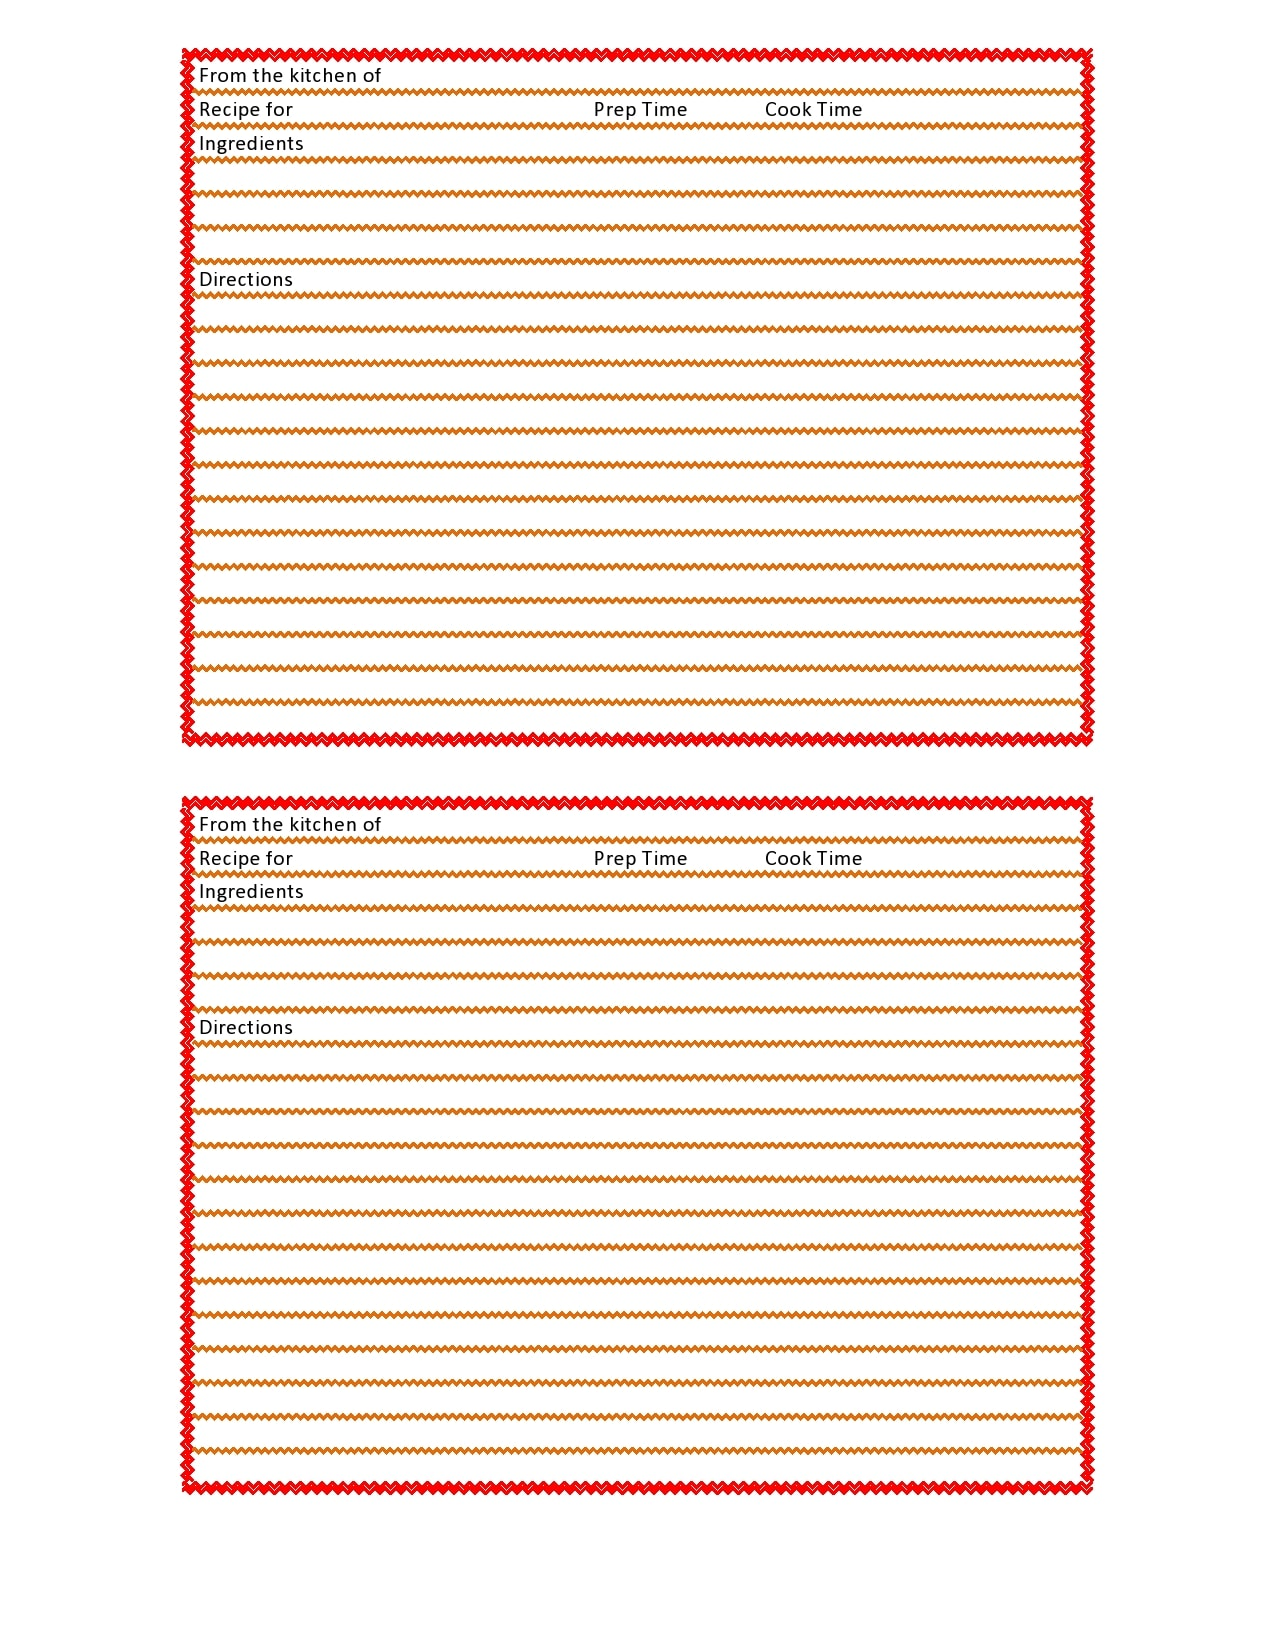 21 Free Recipe Card Templates (Word, Google Docs) - TemplateArchive Throughout Blank Index Card Template